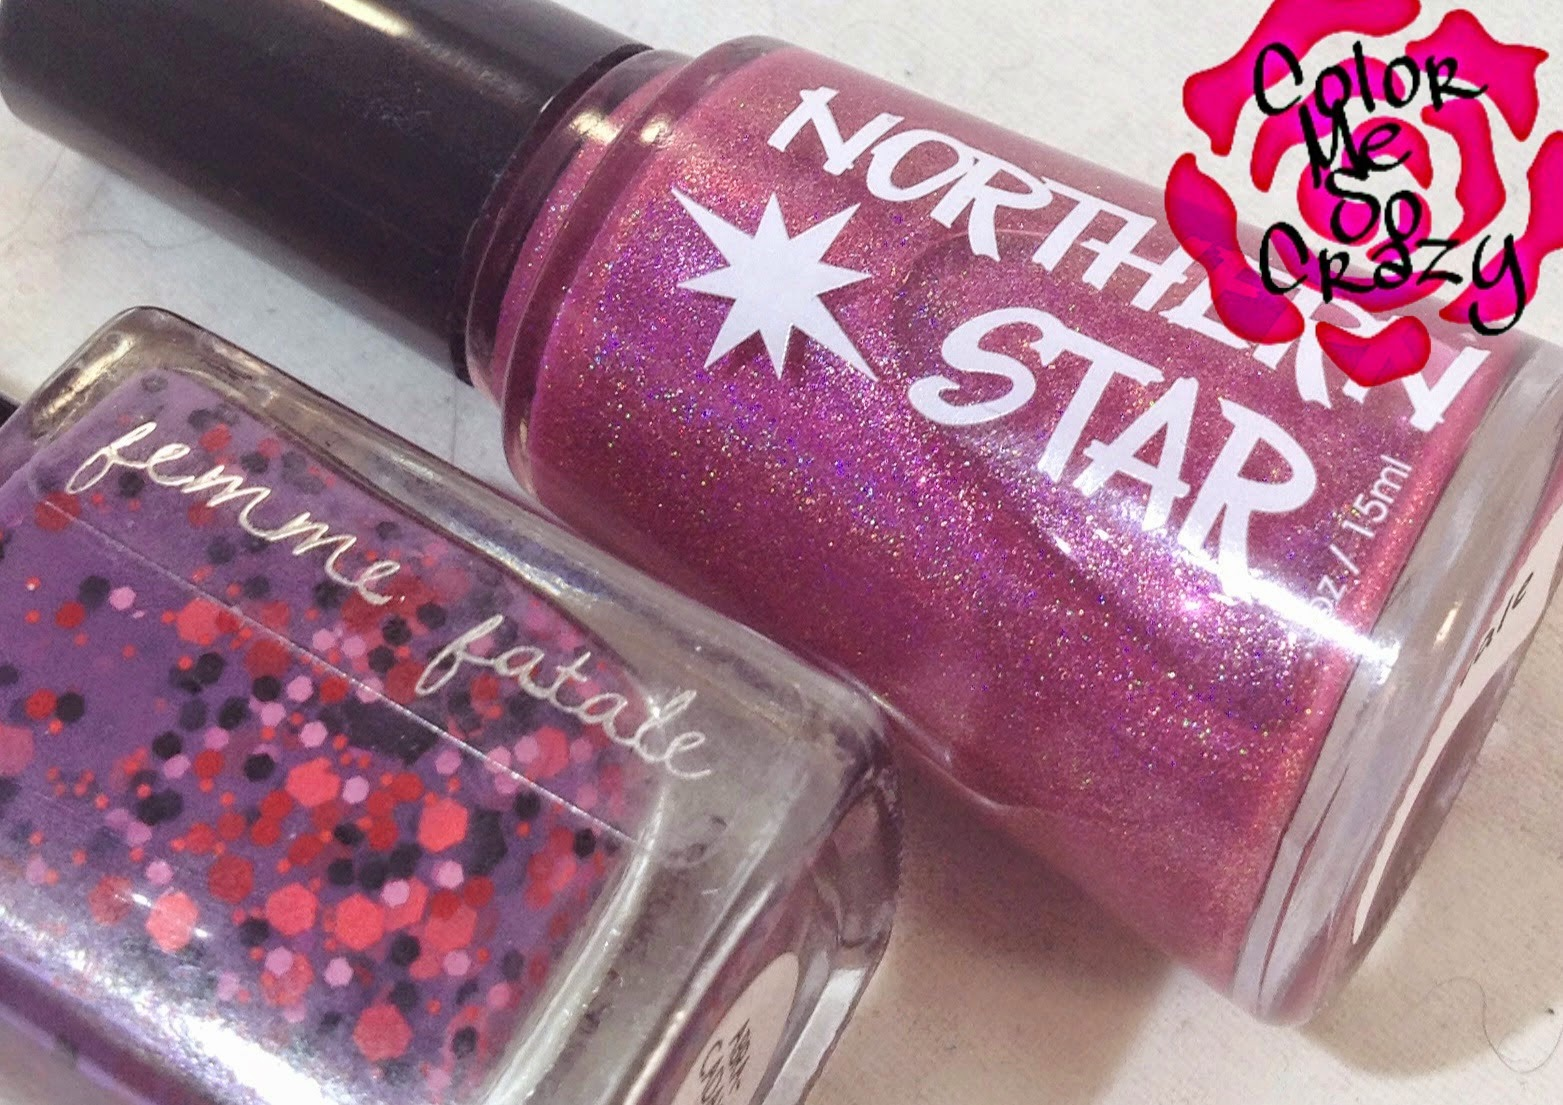 northern star polish, femme fatale, wishes of a blue eyed girl, buddy post